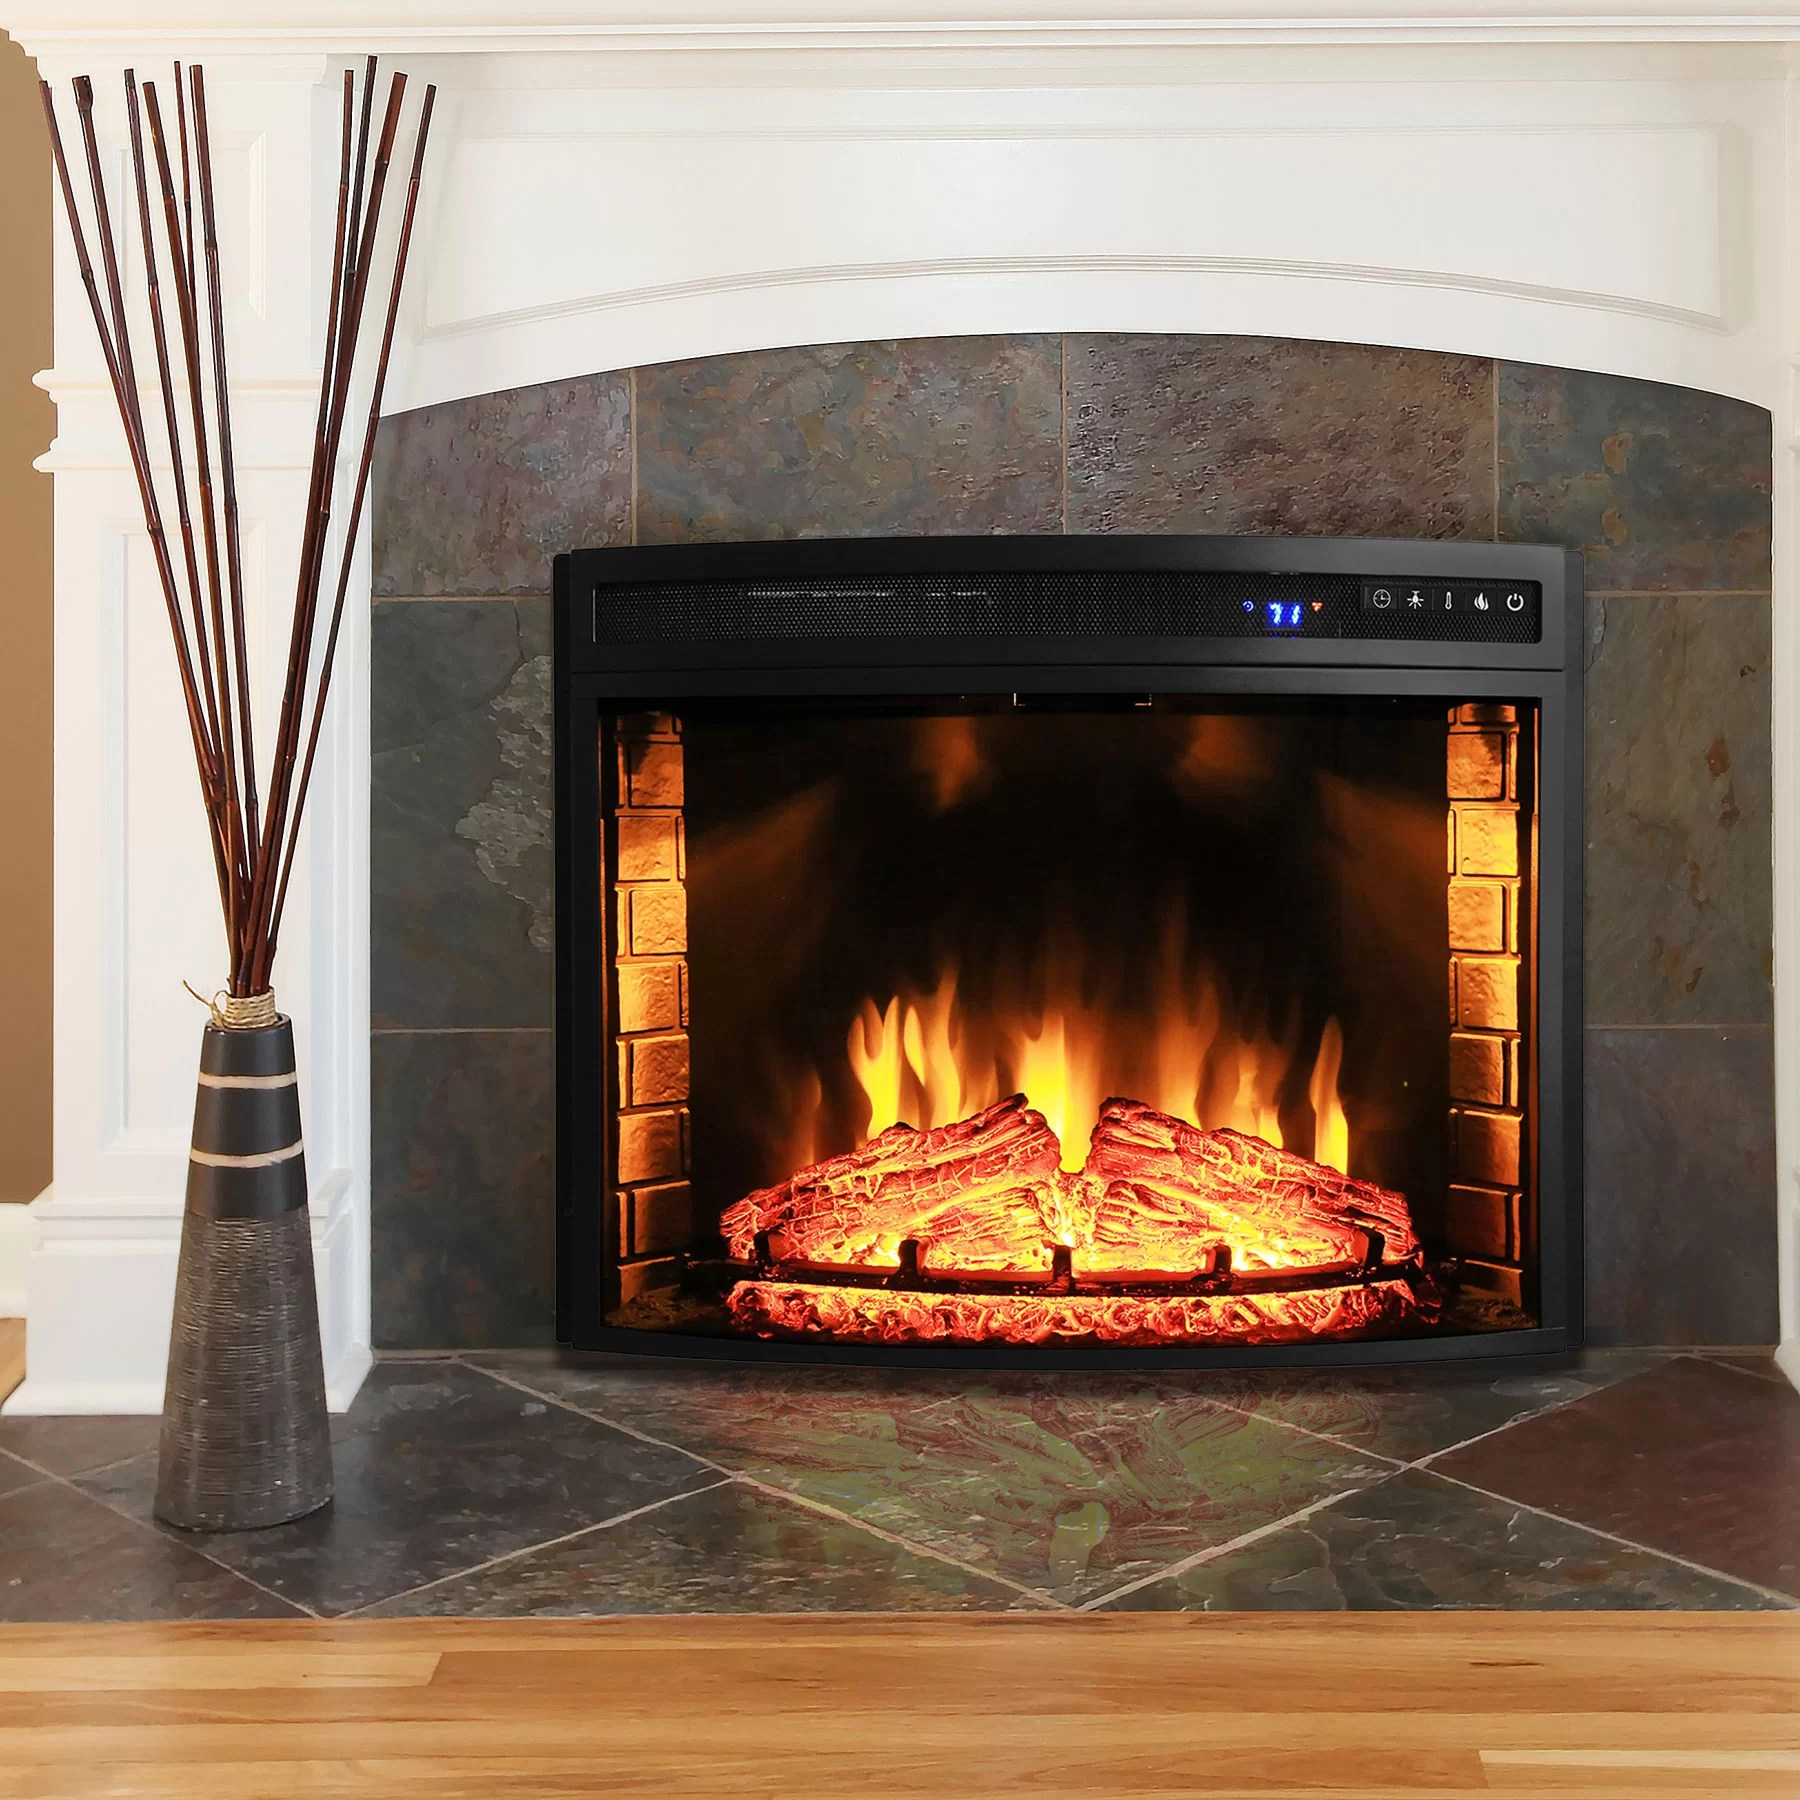 AKDY Curved Wall Mount Electric Fireplace Insert Amp Reviews Wayfair